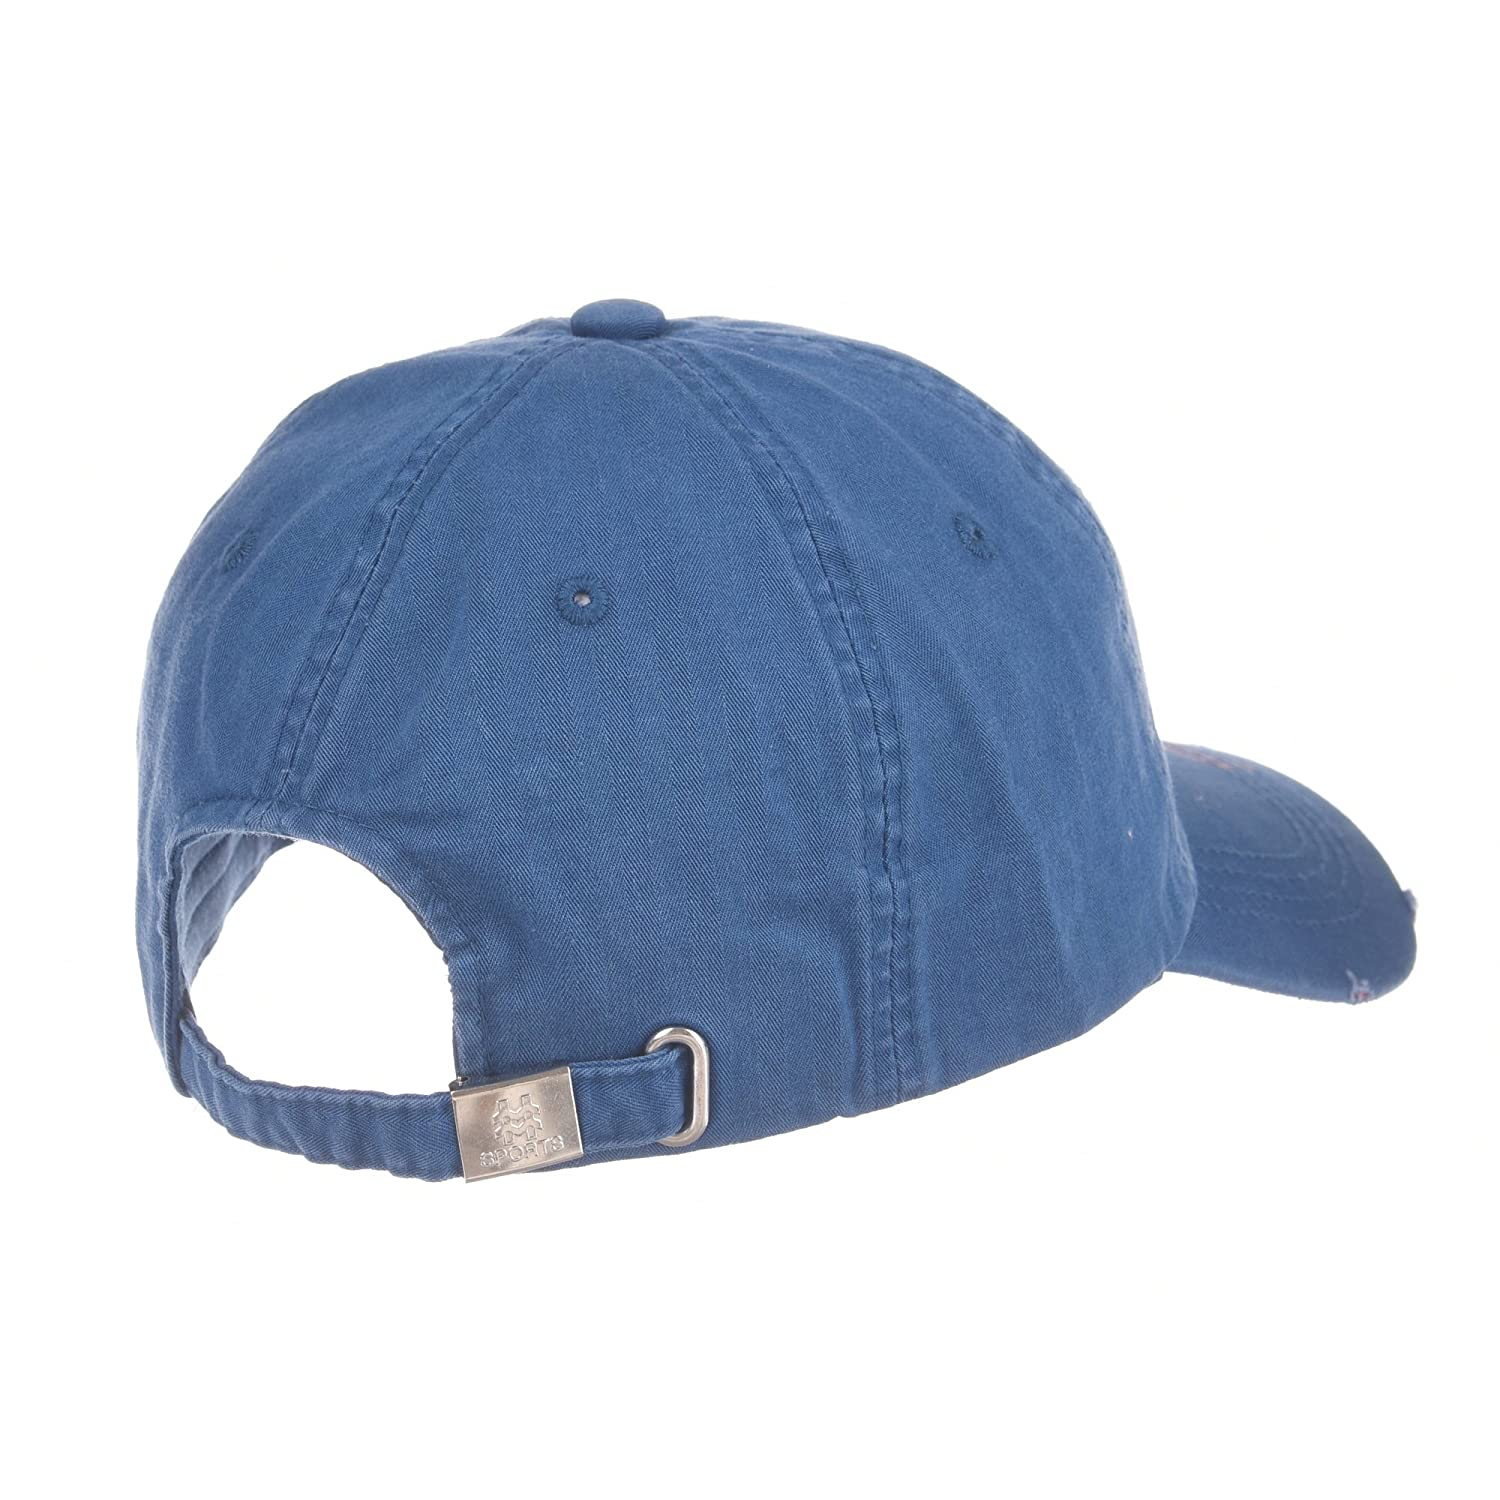 WITHMOONS American Flag Vintage Distressed Patch Baseball Cap Adjustable CR1090 (Blue) at Amazon Mens Clothing store: